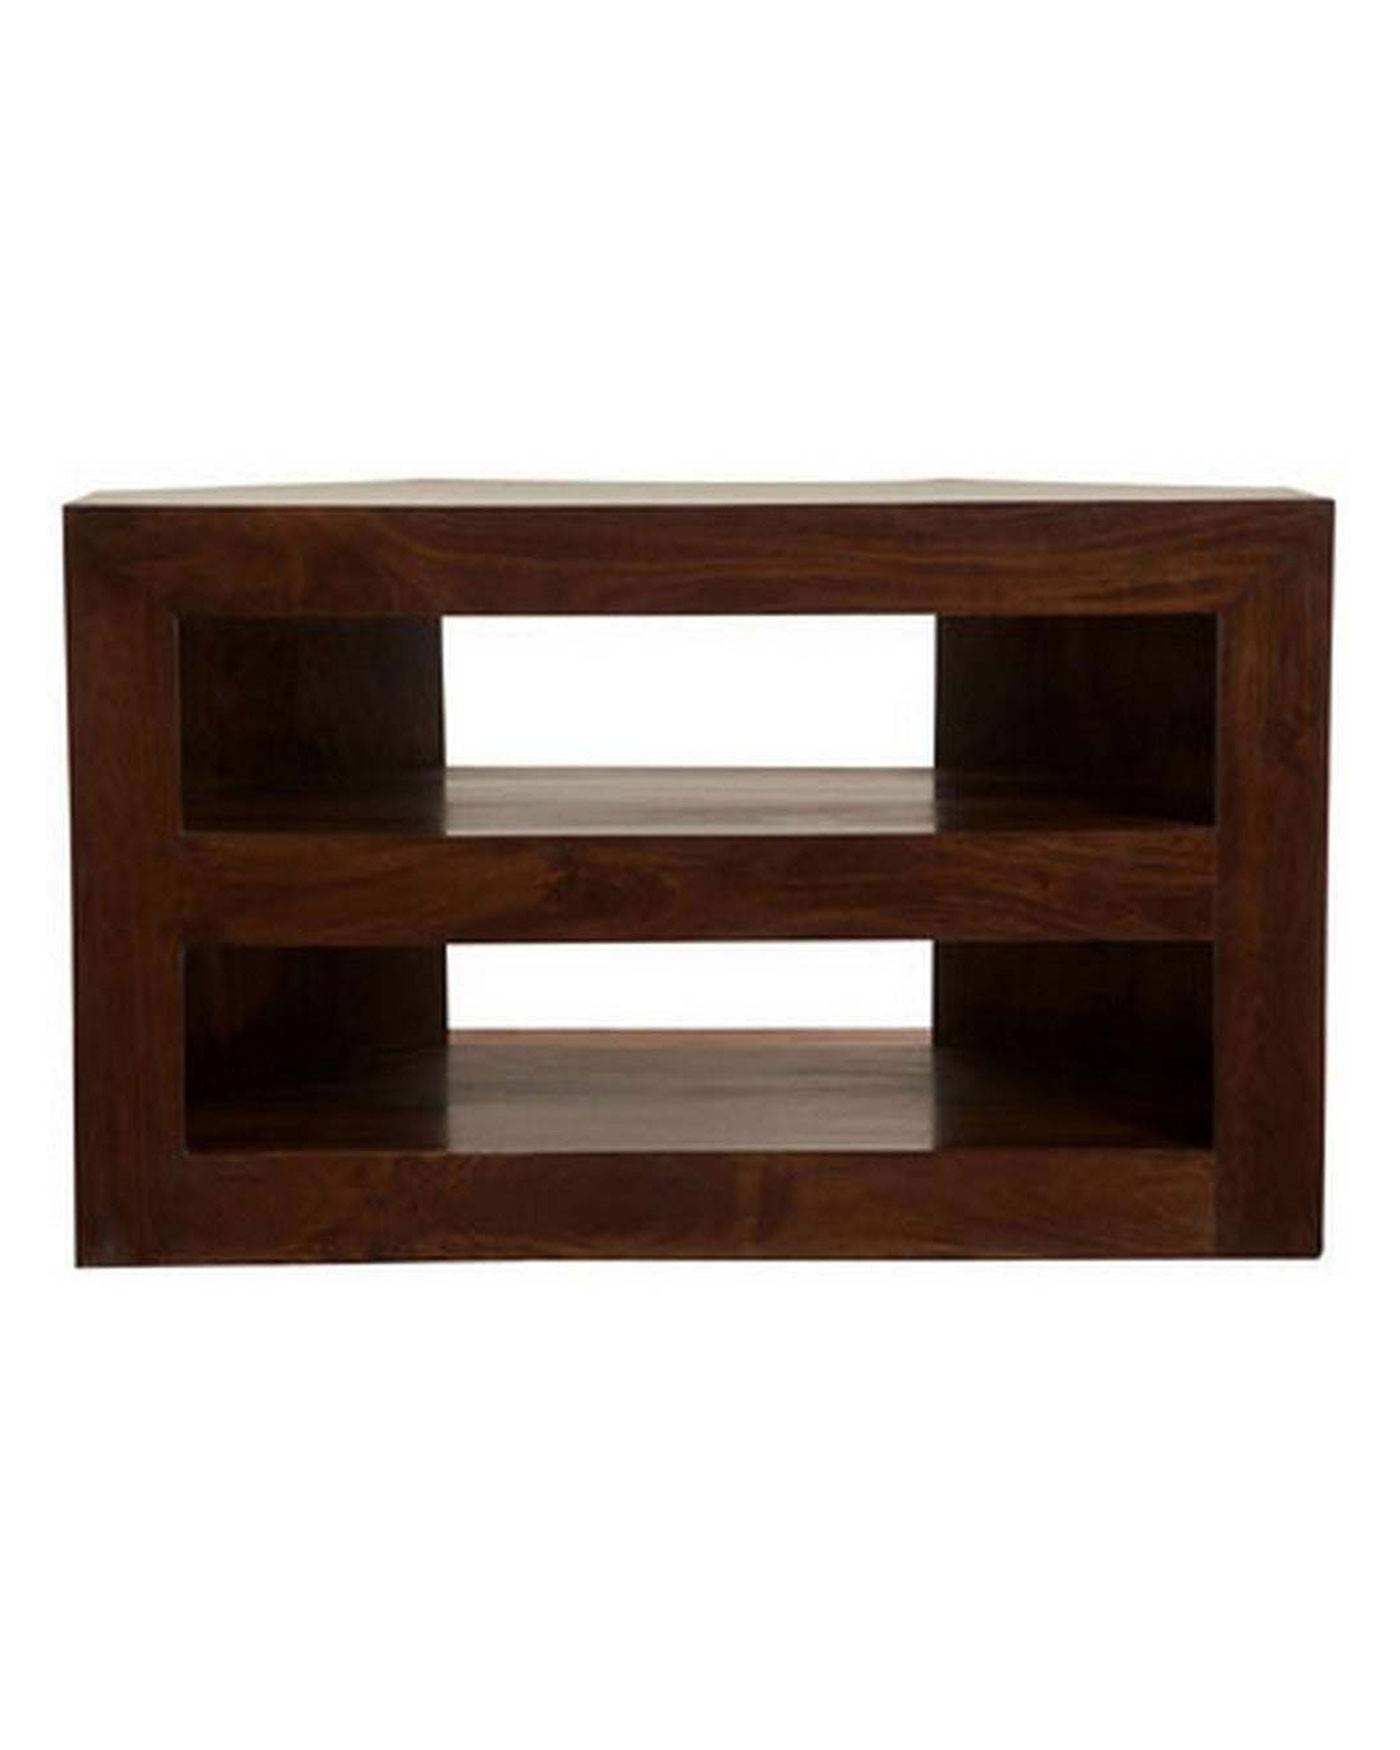 Wooden Tv Stands | Dark Wood Corner Tv Unit | Wooden Tv Cabinet inside Dark Tv Stands (Image 15 of 15)